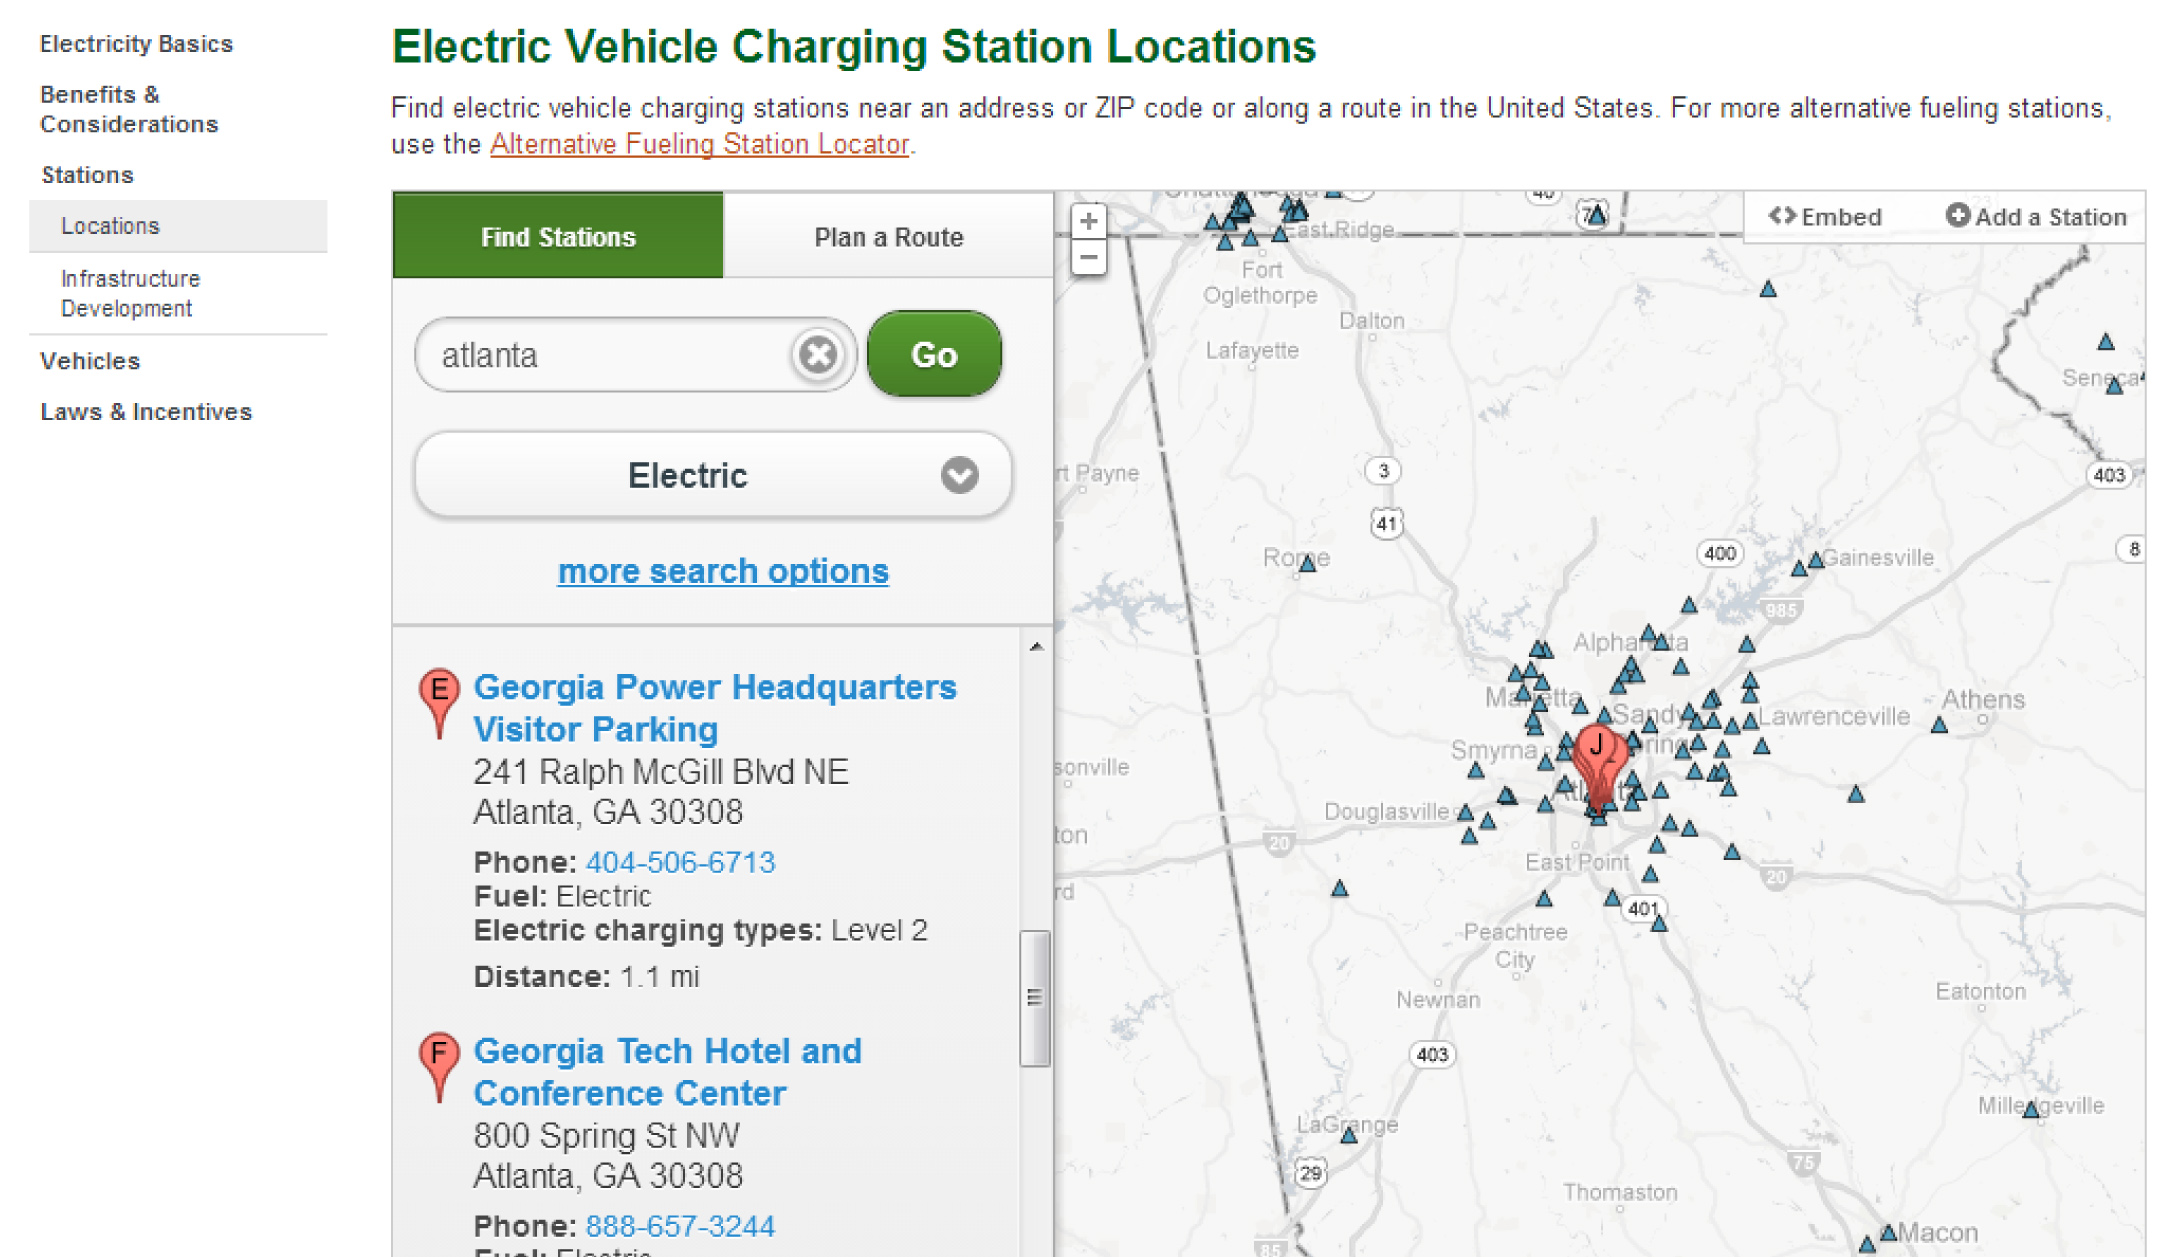 doe-map-of-electric-vehicle-charging-stations-in-georgia